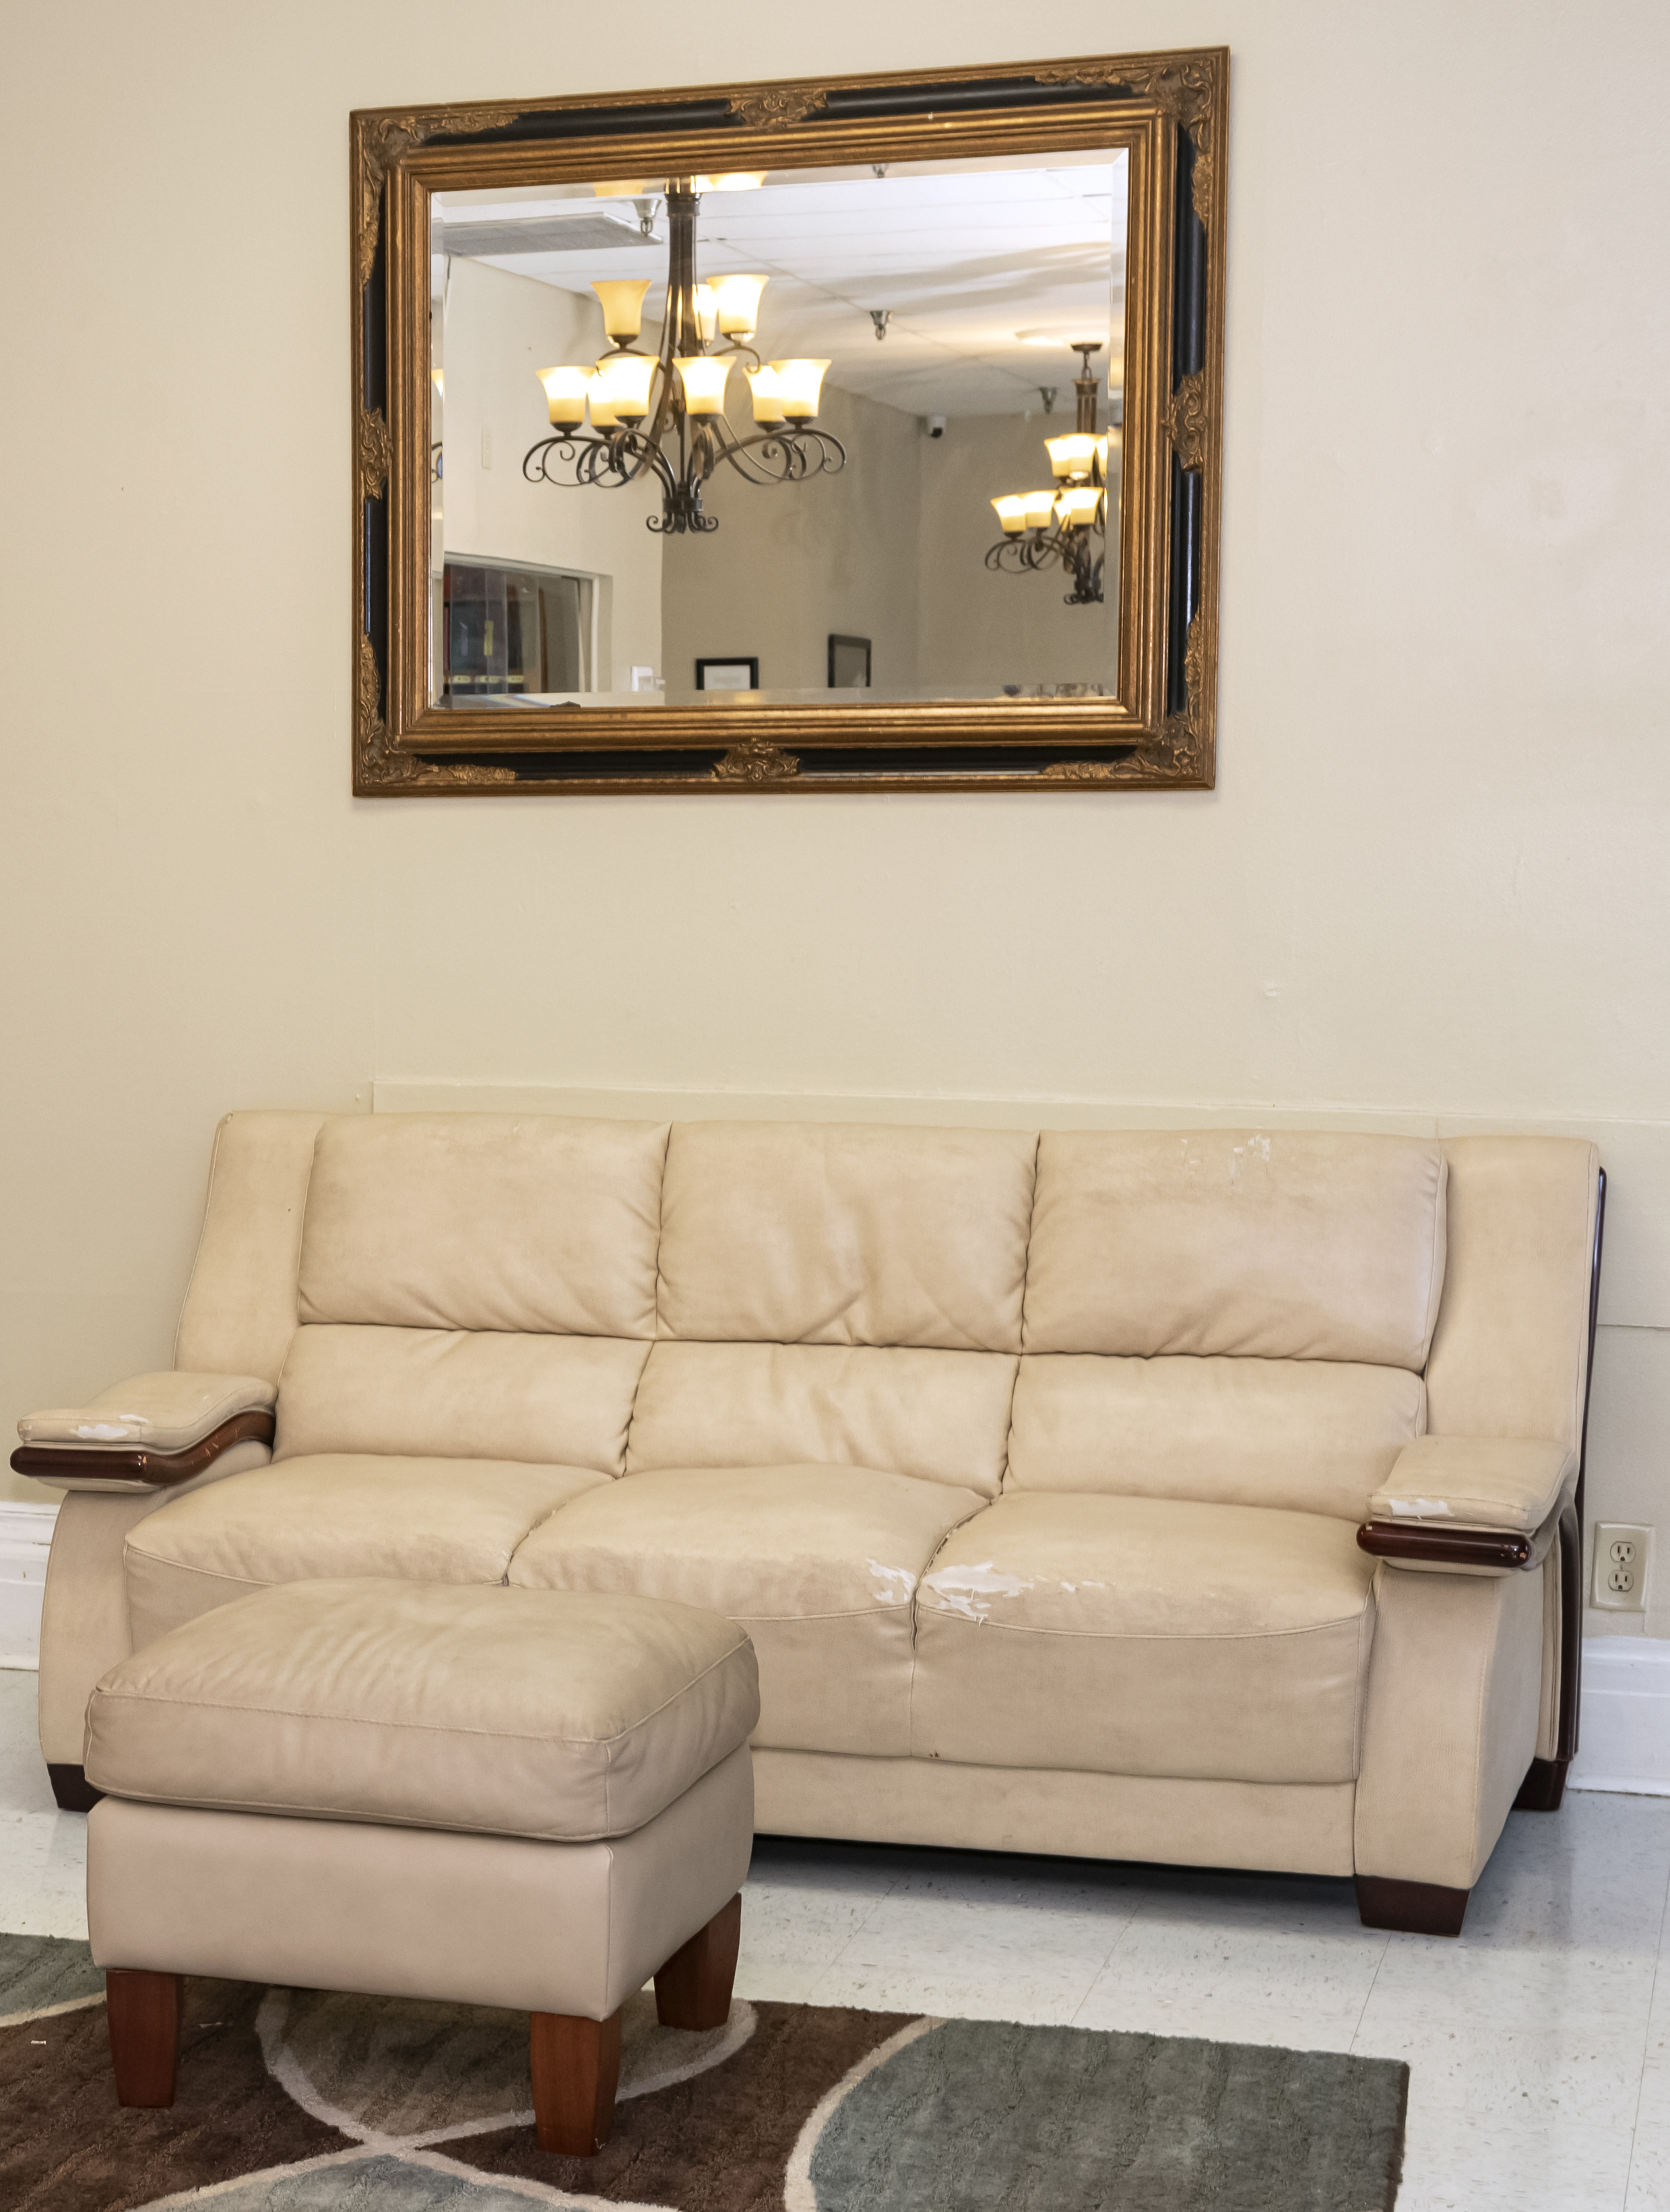 Midway_Couch Interior_5522